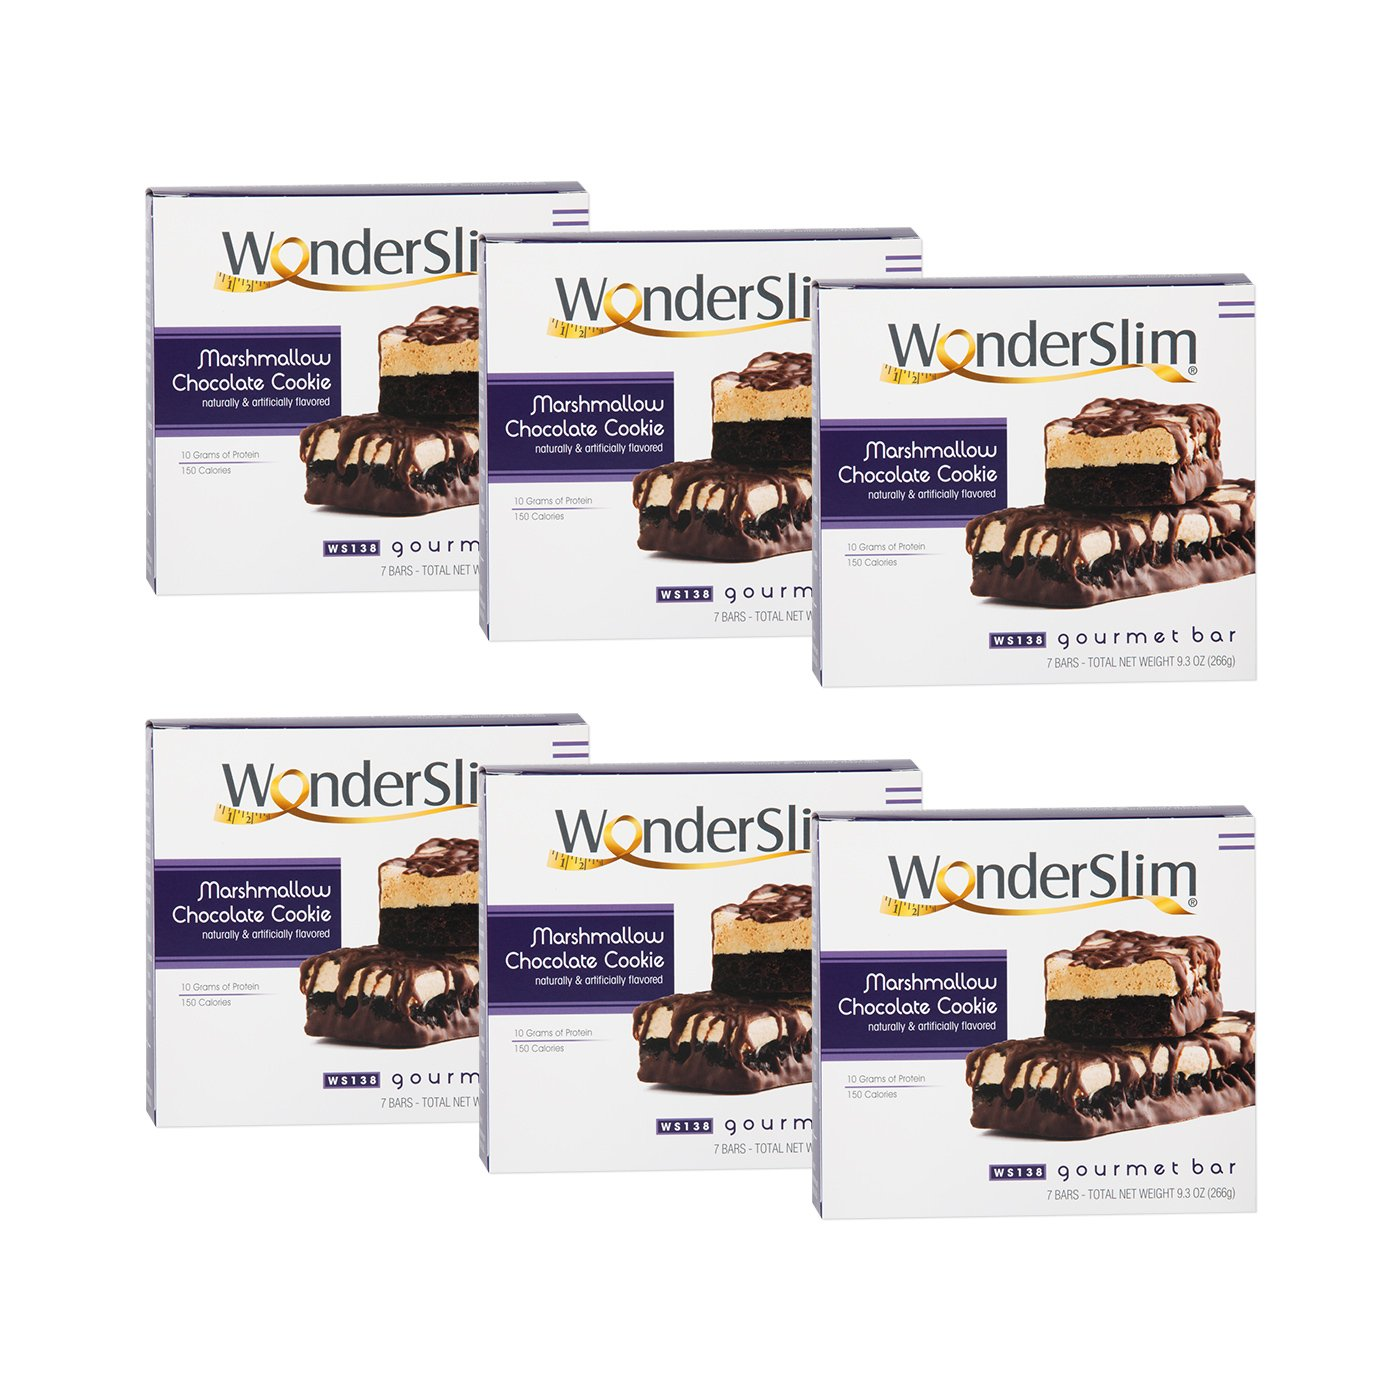 WonderSlim Low-Carb Gourmet High Protein Bar/Diet Bars with 10g Protein - Trans Fat Free, Cholesterol Free, Marshmallow Chocolate Cookie - 6 Box Value-Pack (Save 10%) by WonderSlim